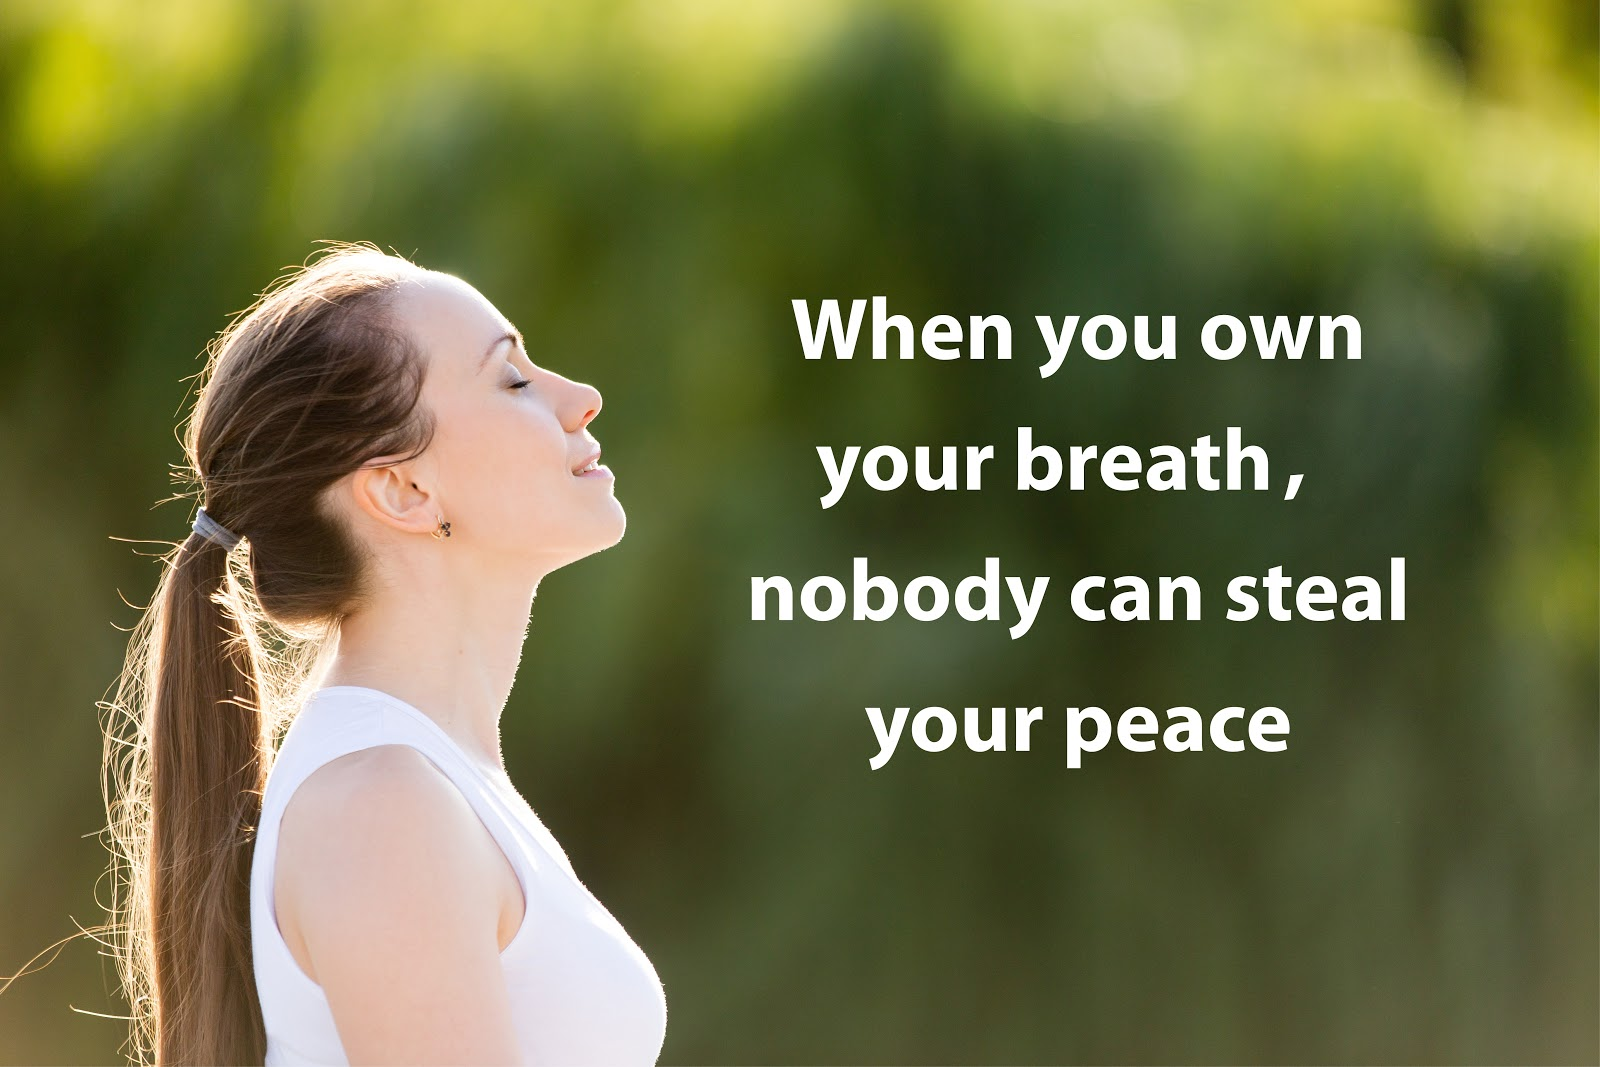 When you own your breath, nobody can steal your peace